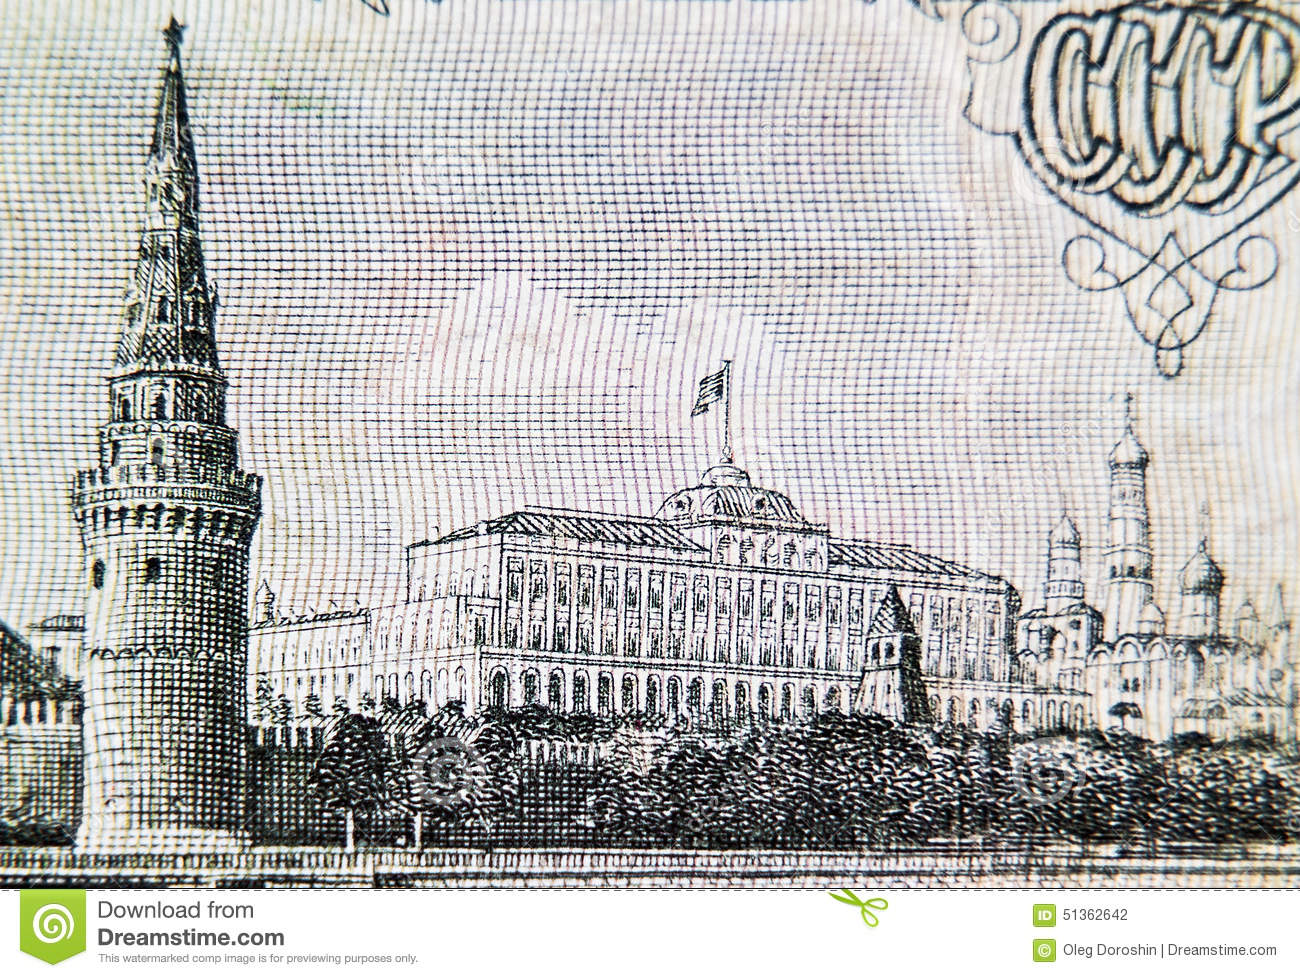 Kremlin on the old Soviet ruble banknote 3